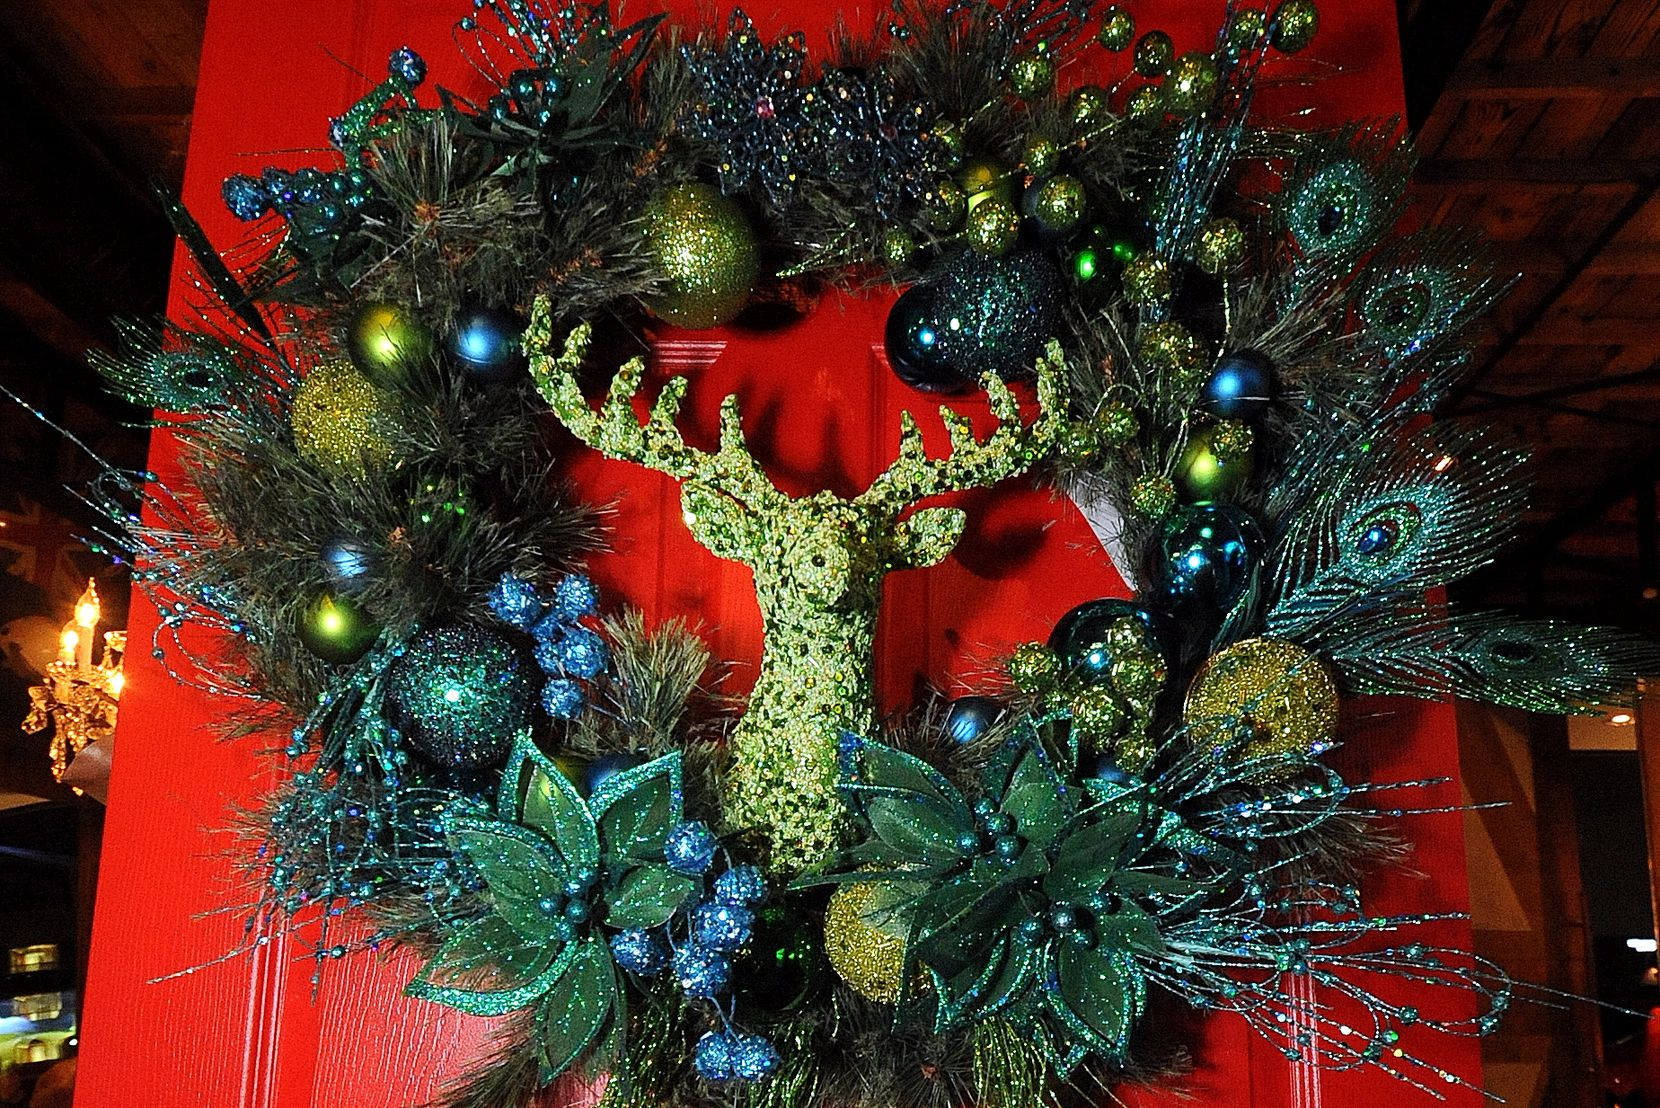 On Nov. 14, DIFFA (Design Industries Foundation Fighting AIDS) will auction off unique wreaths, like this one from a previous event.